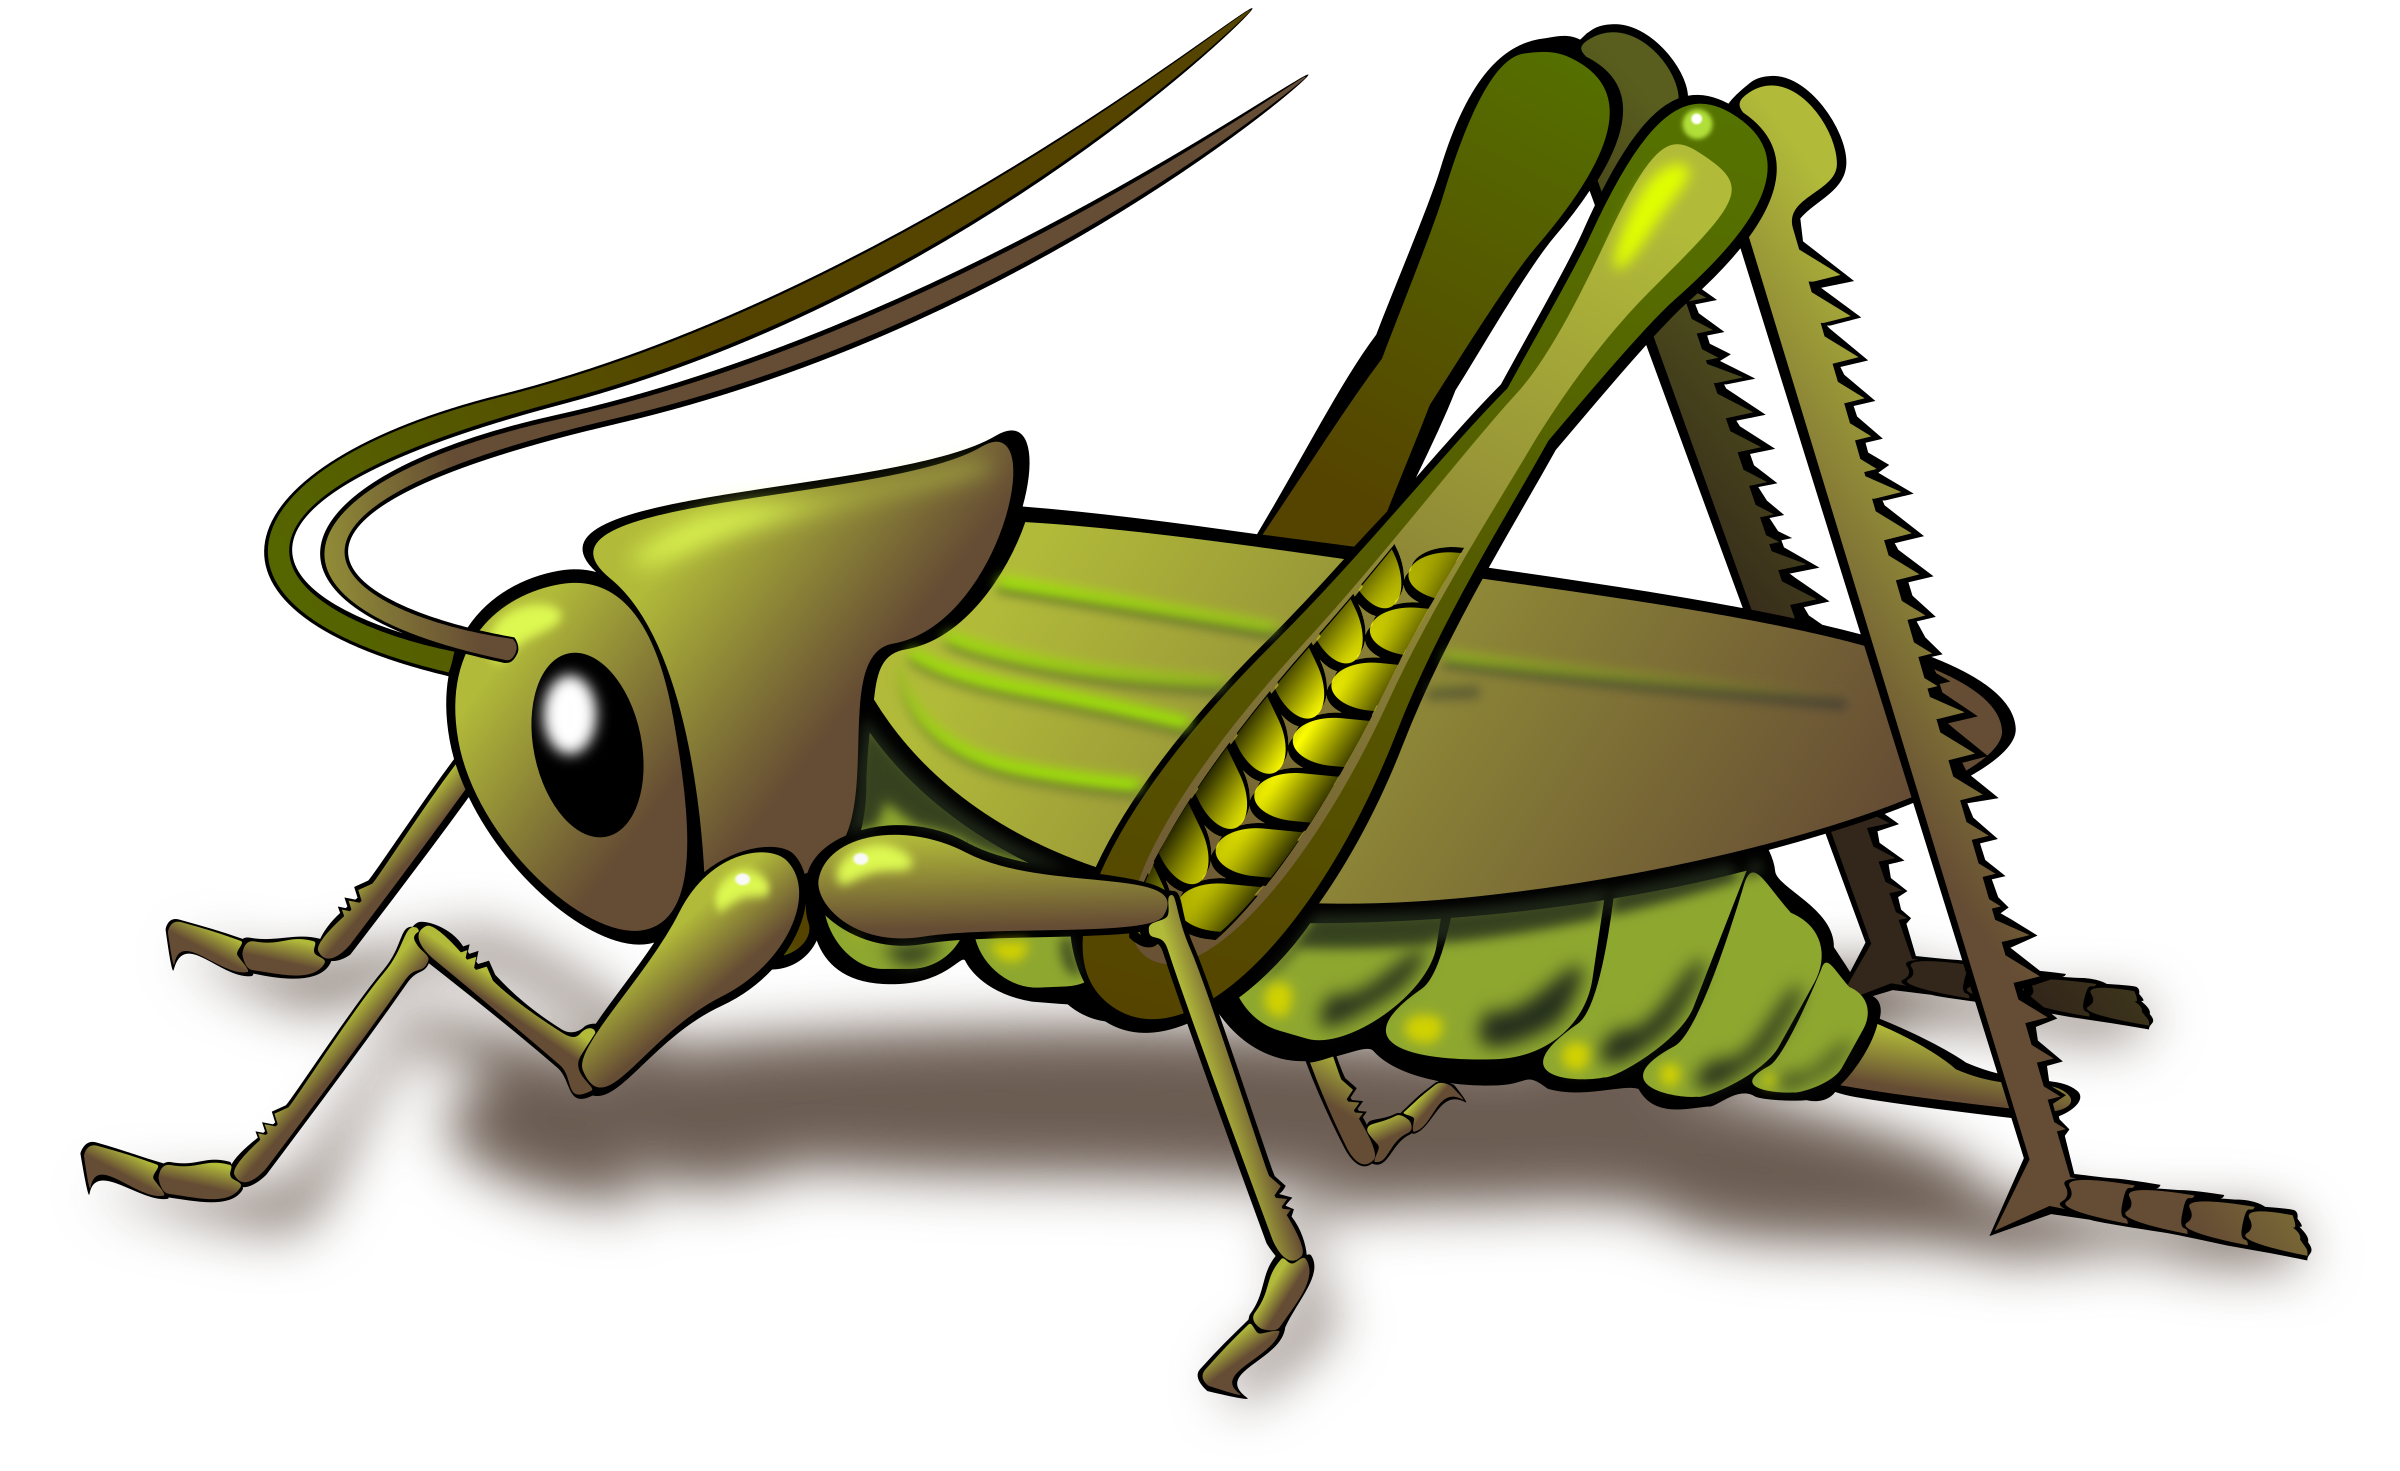 Grasshopper by erins.secret72@yahoo.com